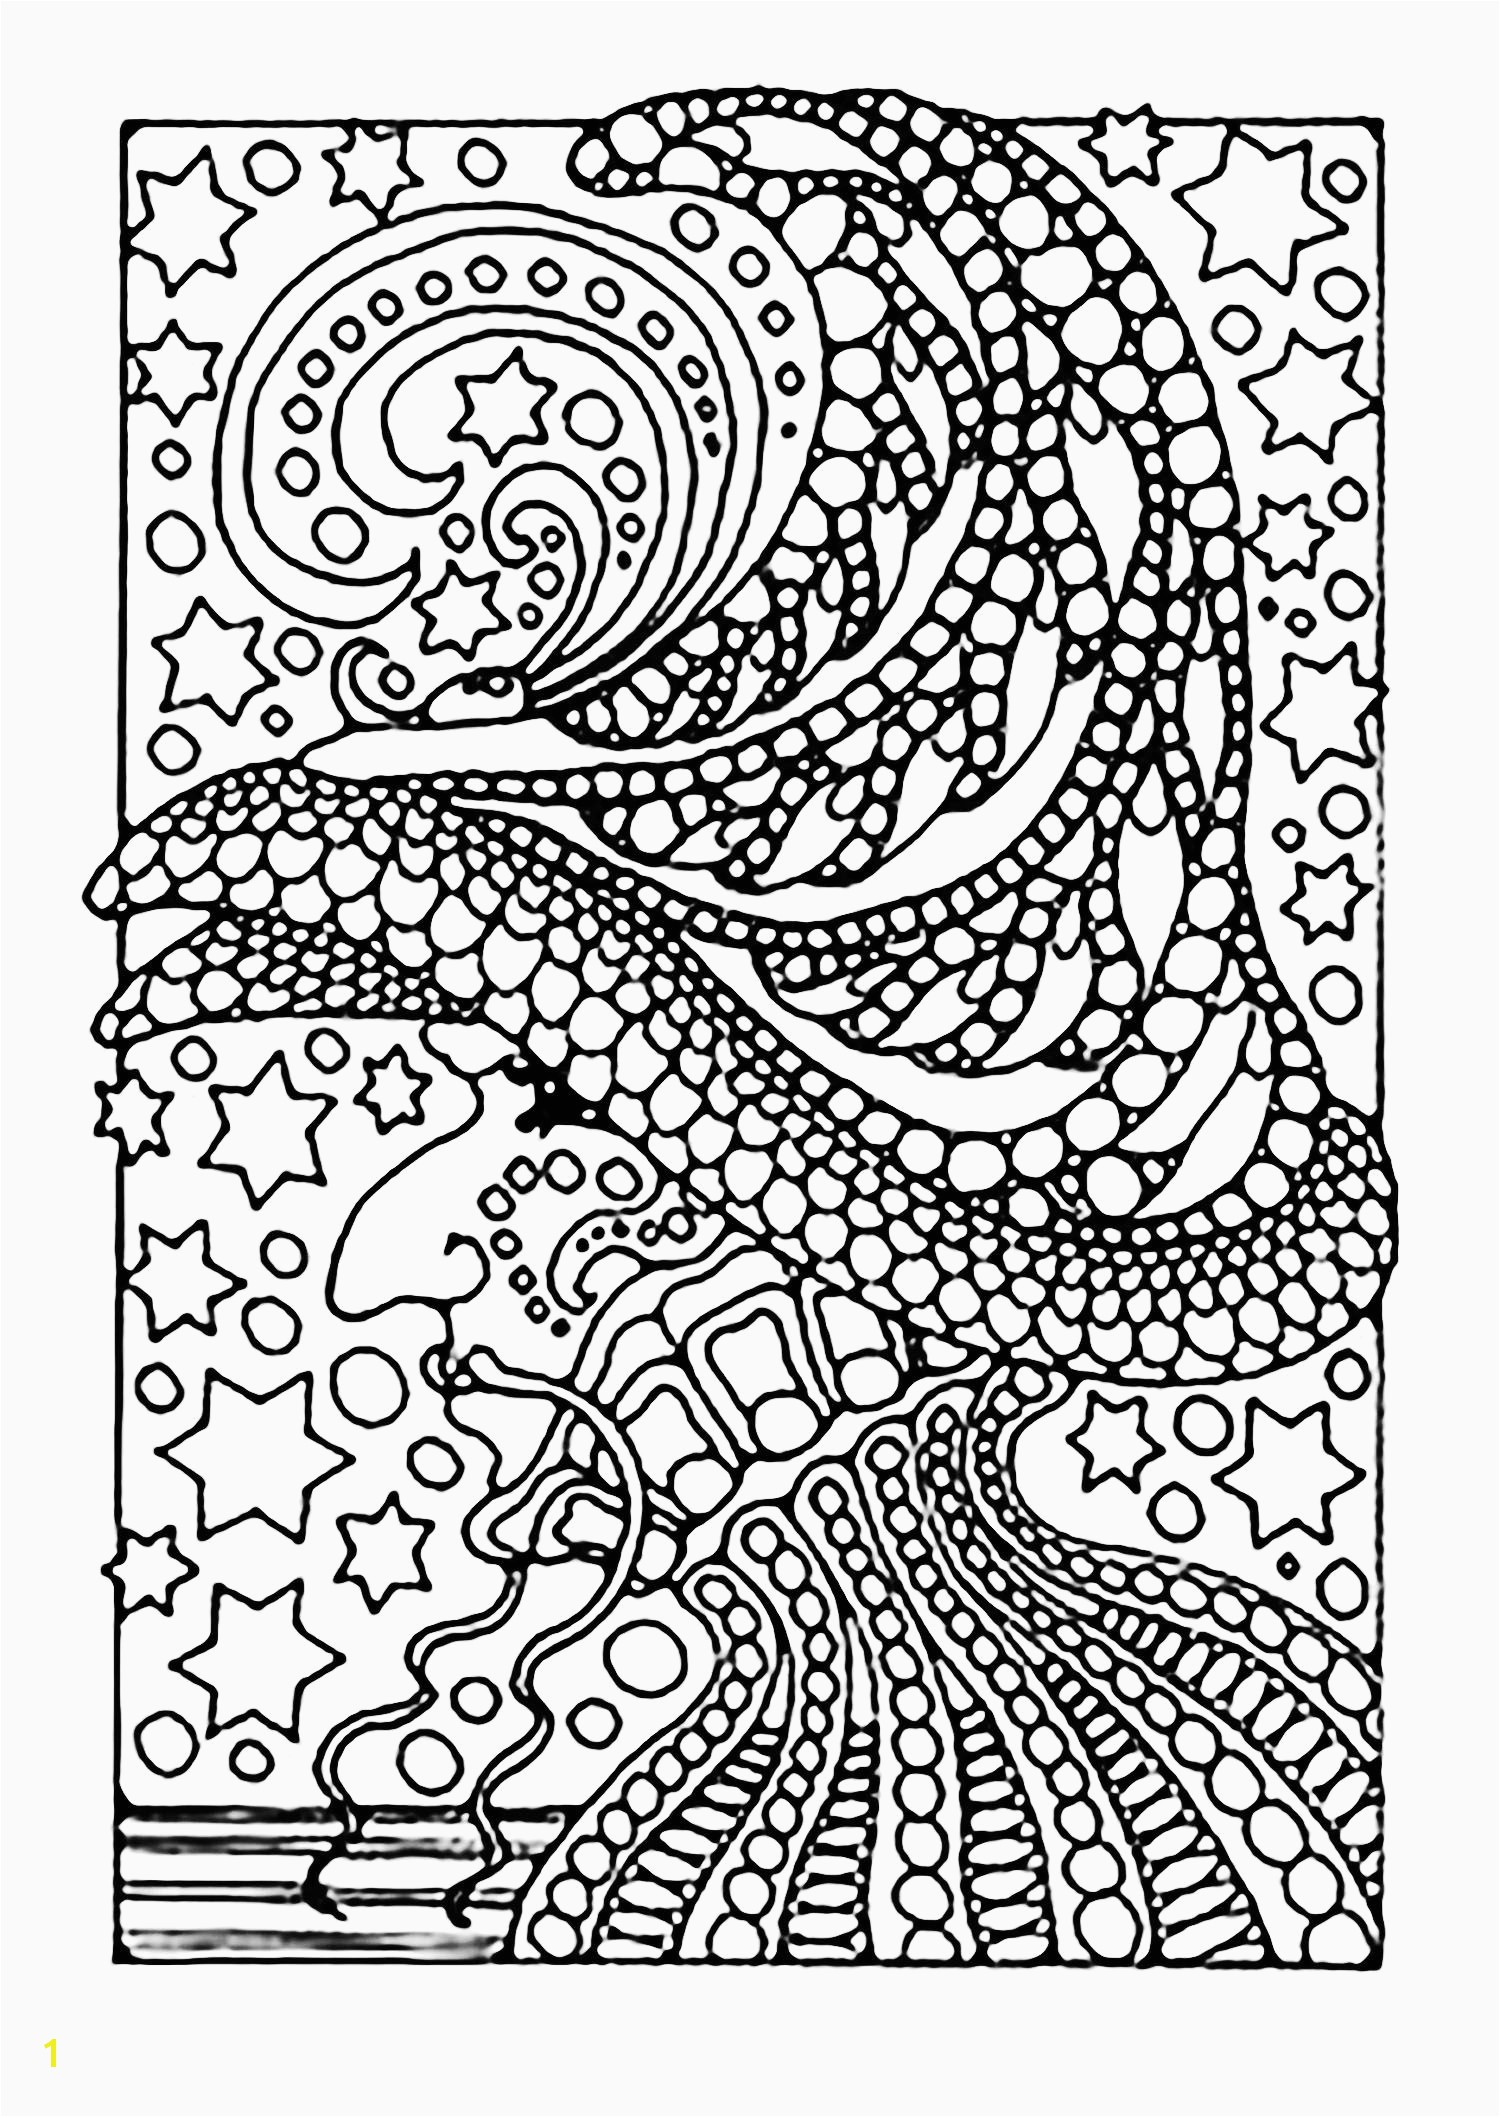 line Coloring Pages for Kids Fresh Coloring Pages Line New Line Coloring 0d Archives Con Scio